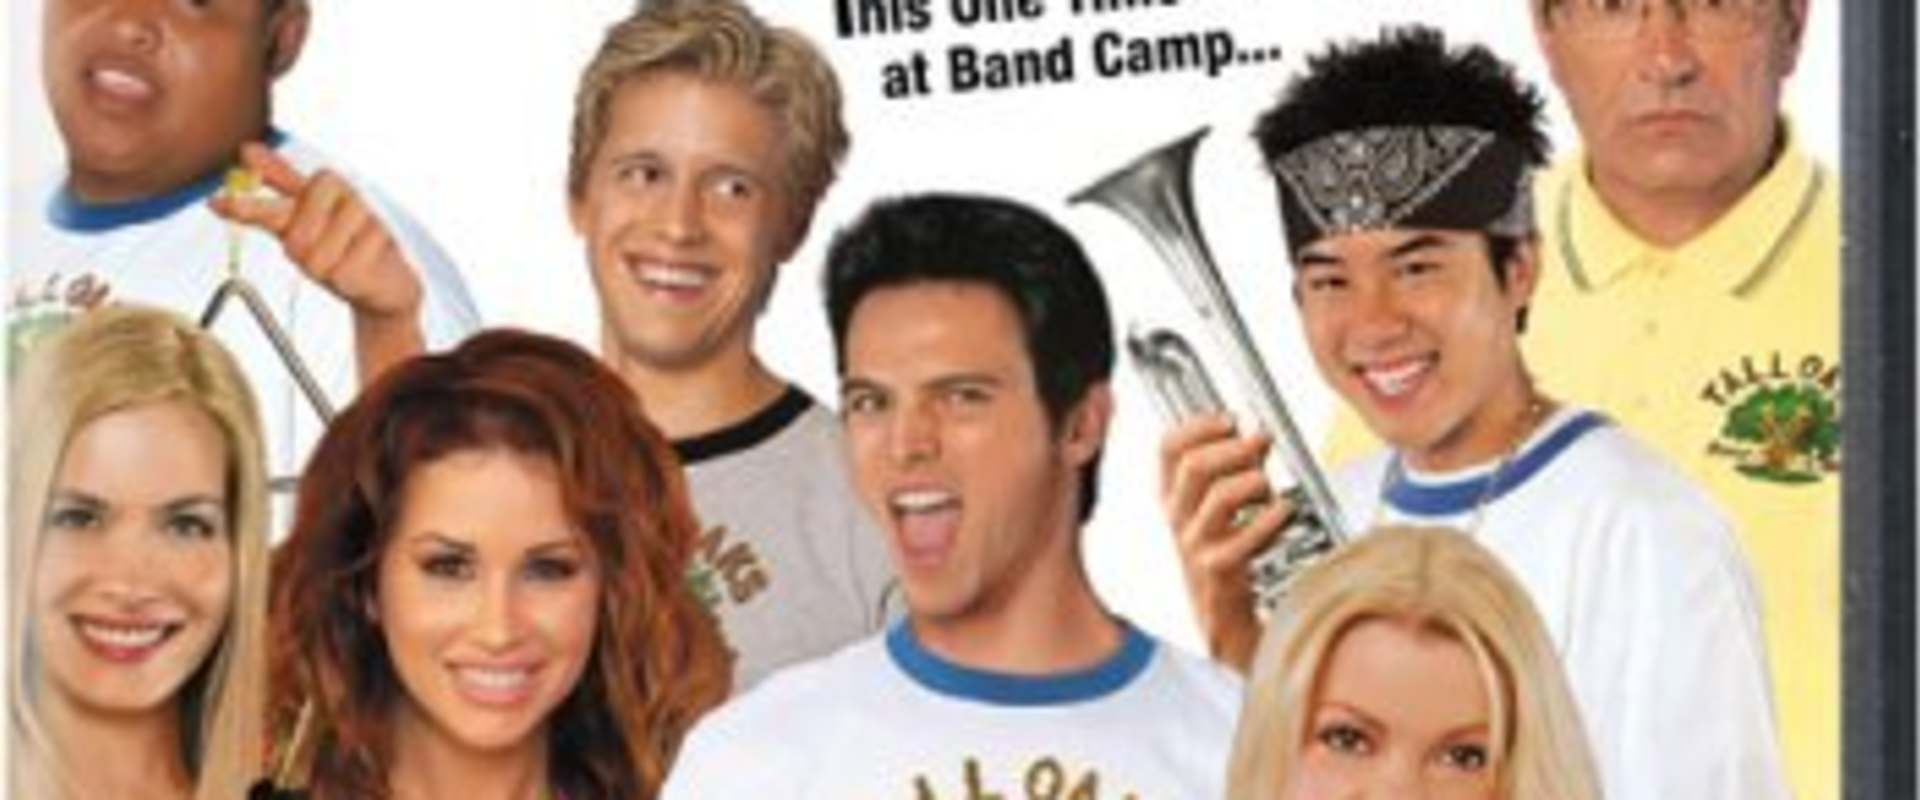 Cast Of American Pie Presents Band Camp